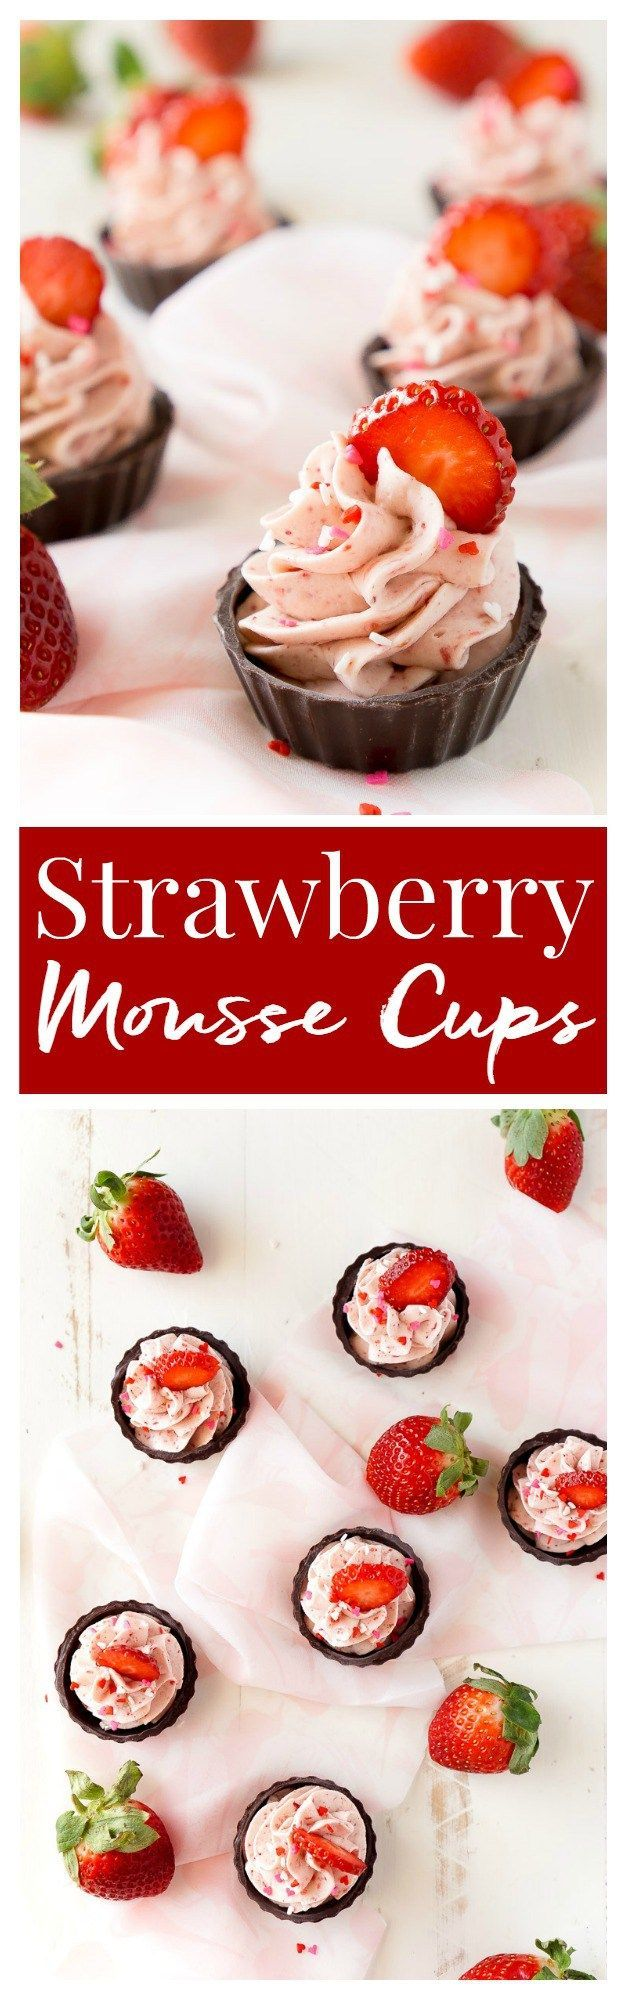 These Strawberry Mousse Cups are an easy dessert! A fluffy strawberry mousse is served in chocolate shells for a fun and simple treat that's great for Valentine's Day, baby showers, bridal showers, or (Chocolate Souffle Easy)